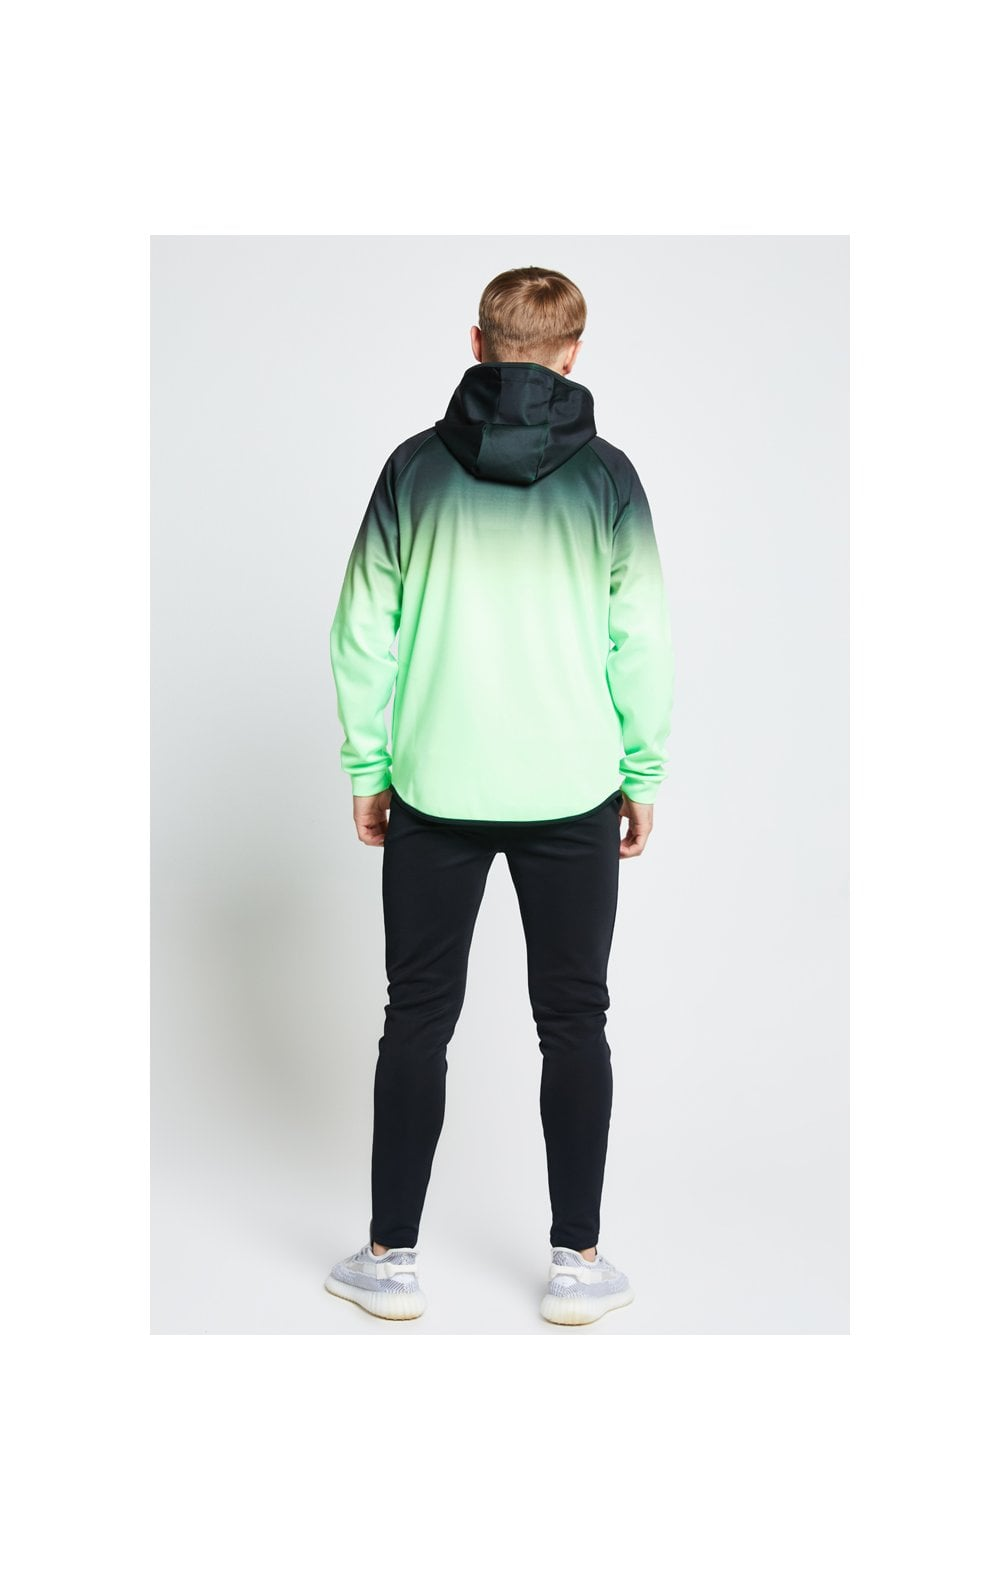 Illusive London Athlete Zip Through Hoodie - Black & Neon Green (4)